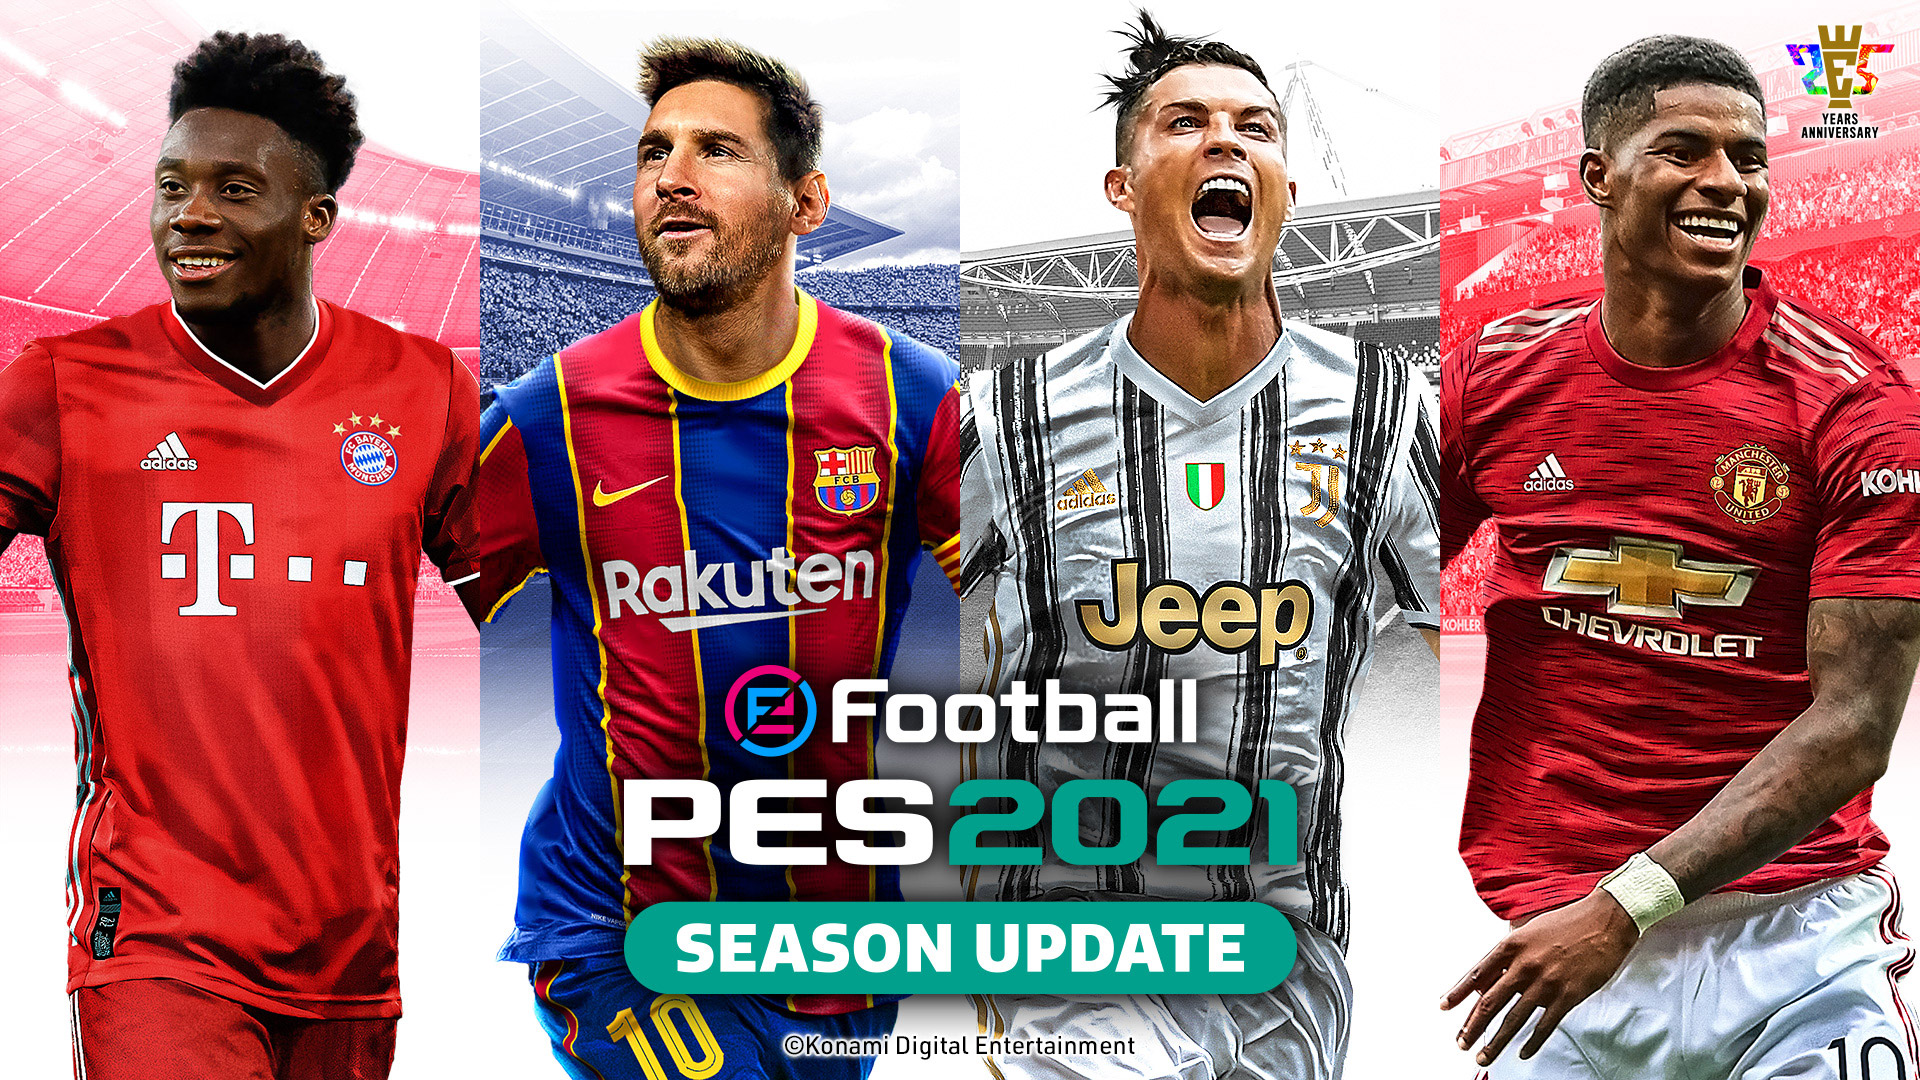 Free eFootball PES 2021 Wallpaper in 1920x1080